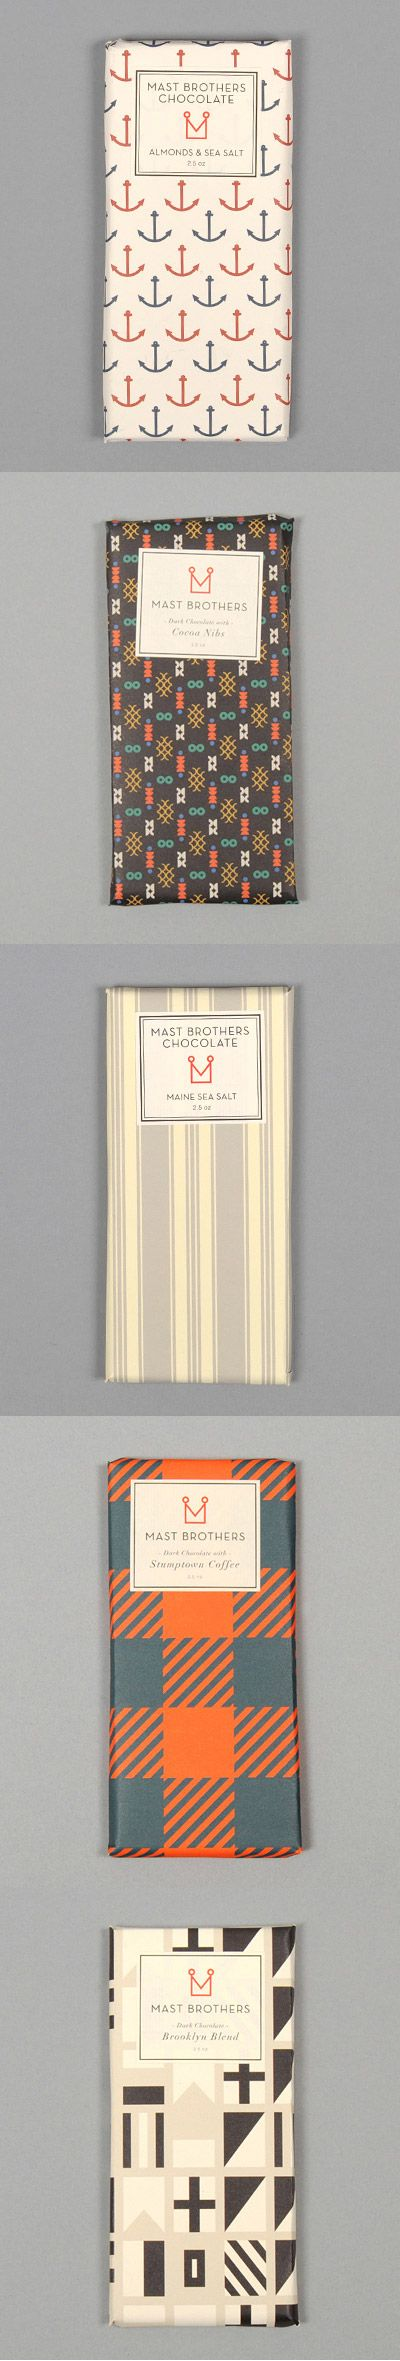 Mast Brothers Chocolate Bar Packaging http://www.hickorees.com/